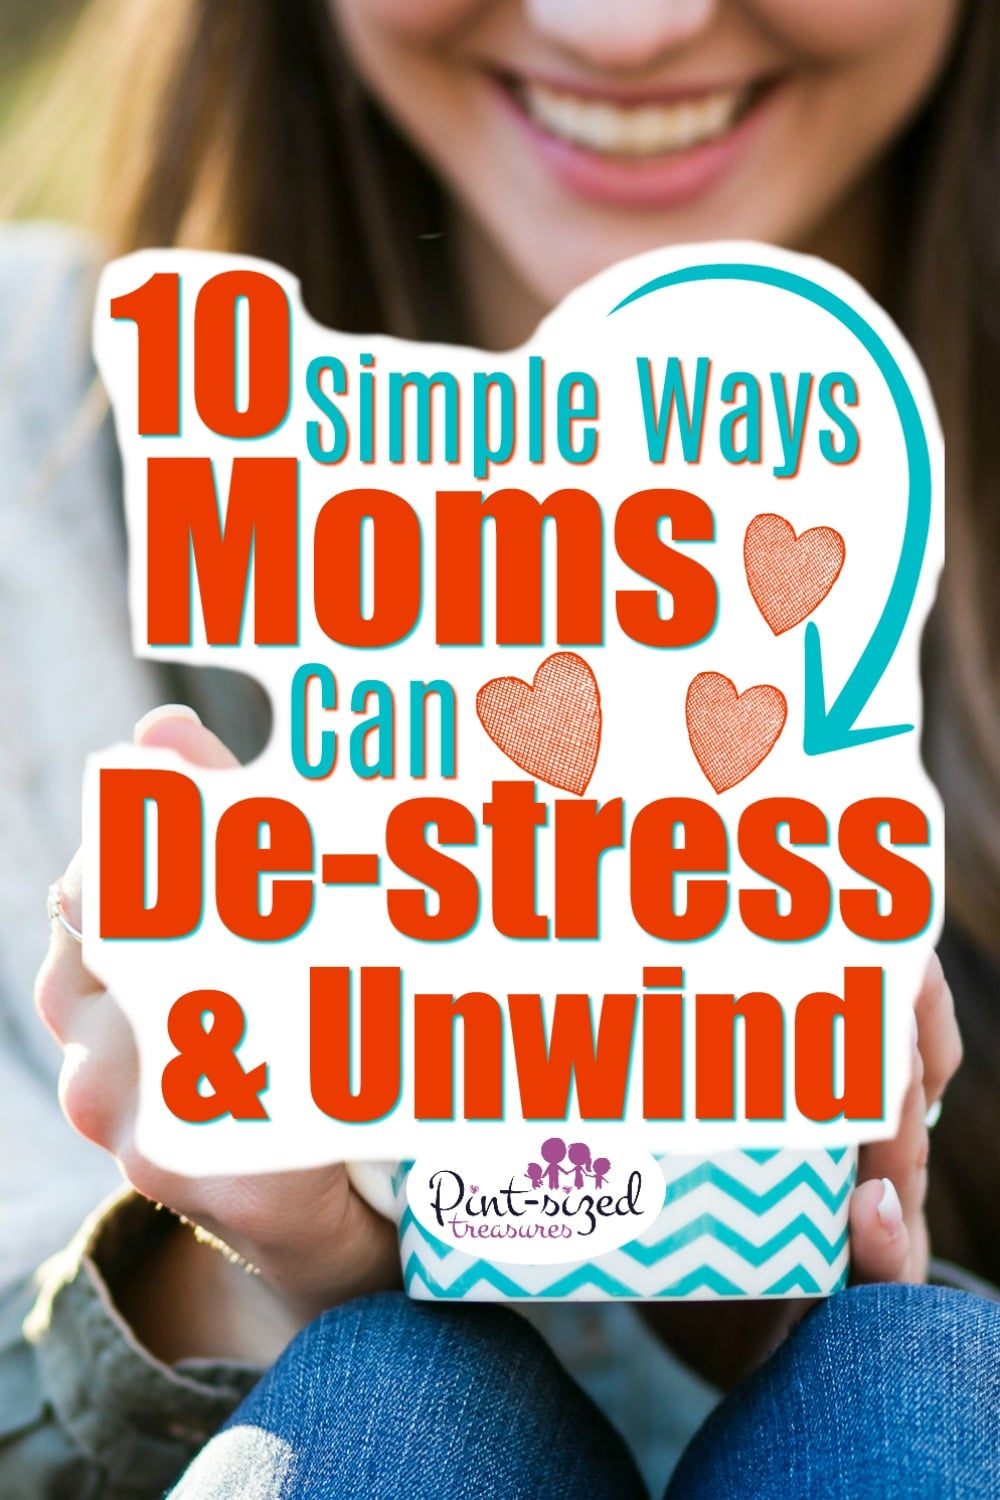 Simple Ways Moms Can Destress and Unwind